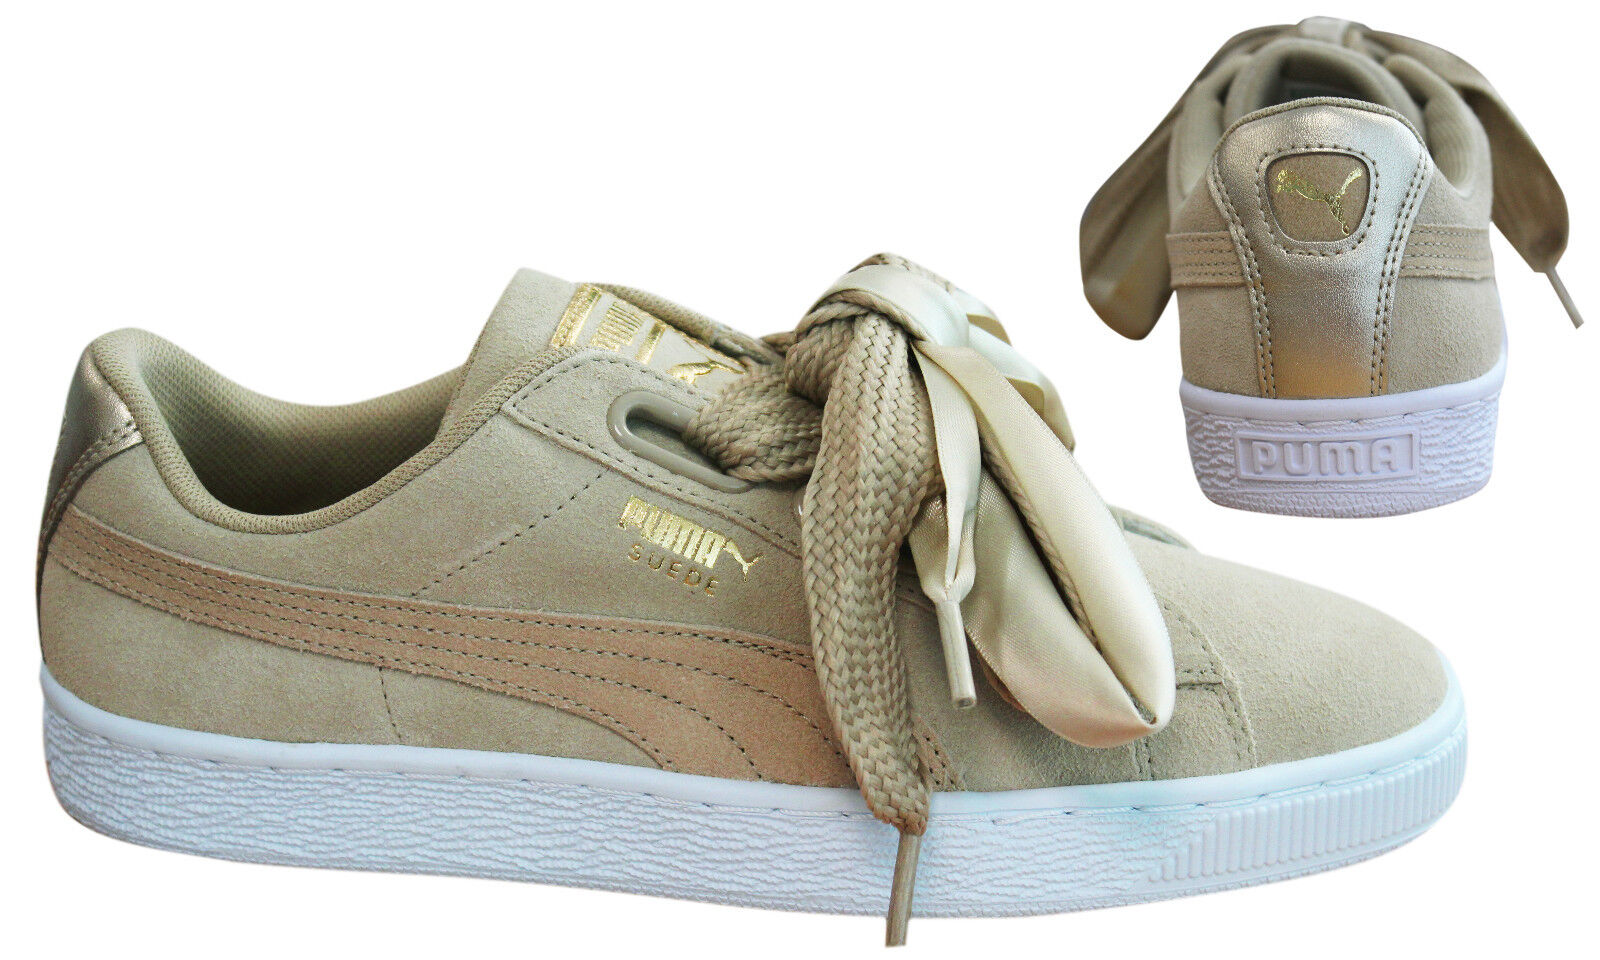 5357230c2b0fbb Puma Suede Heart Safari Womens Trainers Lace Up Beige Leather 364083 ...